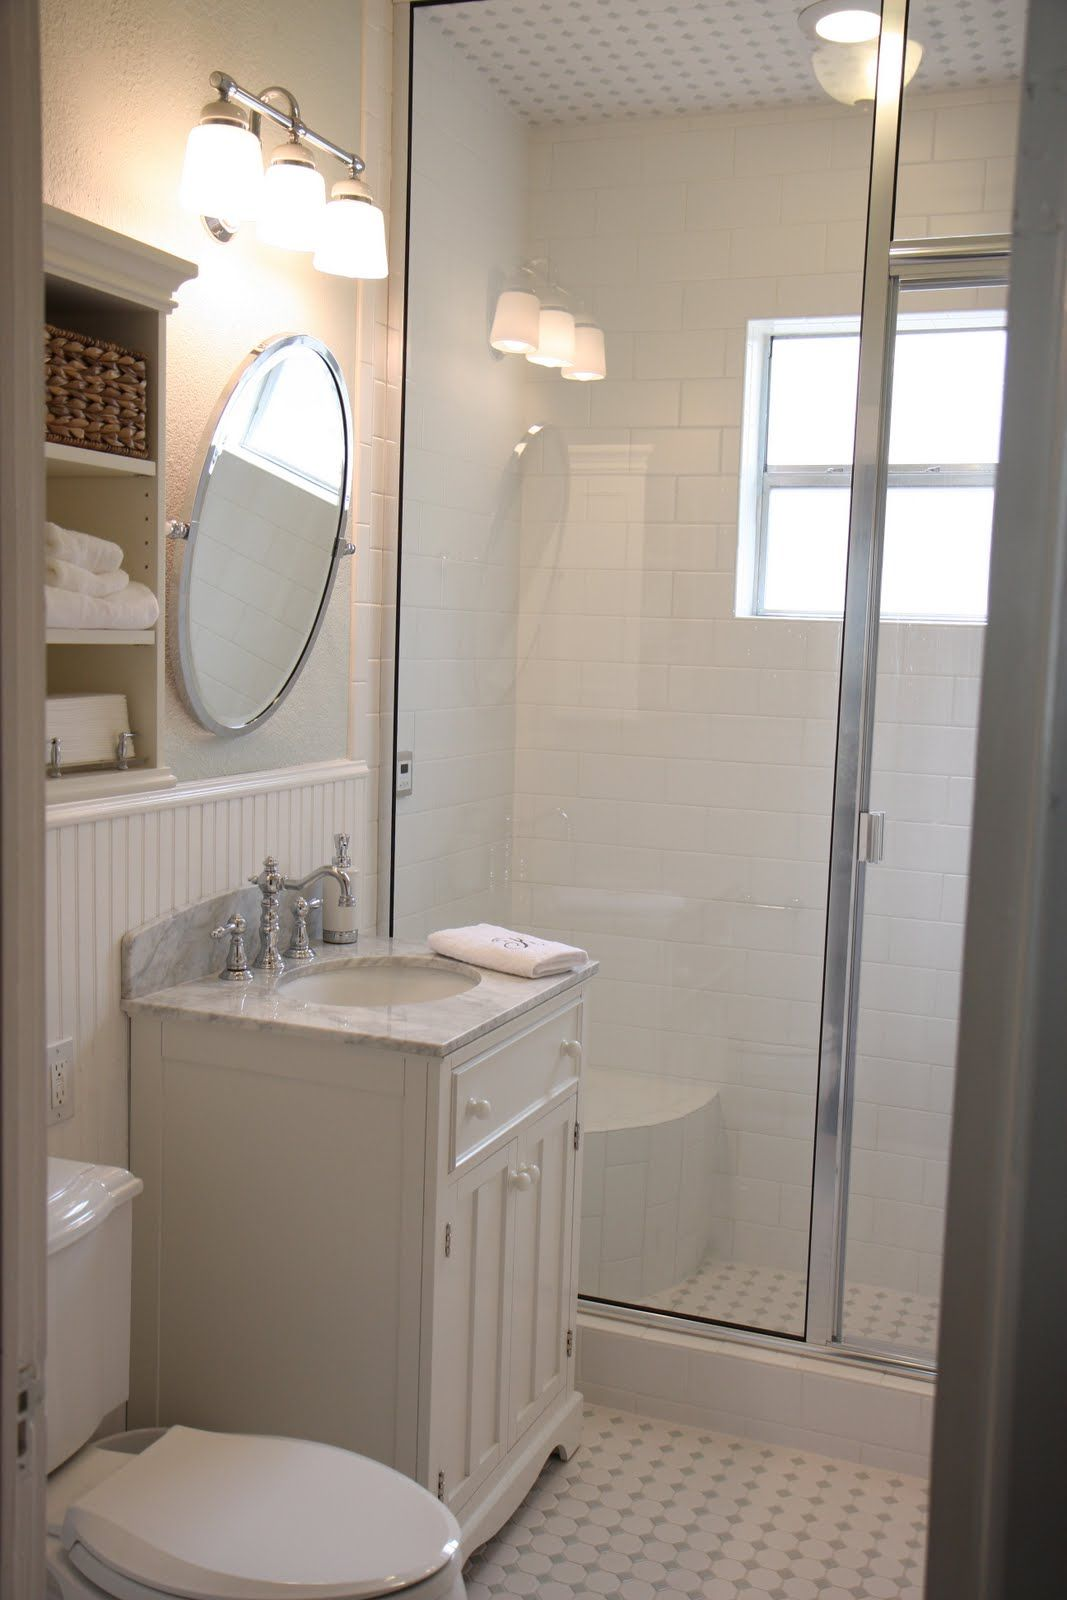 ARTEC Group Inc Interior Design And Remodeling Firm Fort Worth TX - Historic bathroom remodel